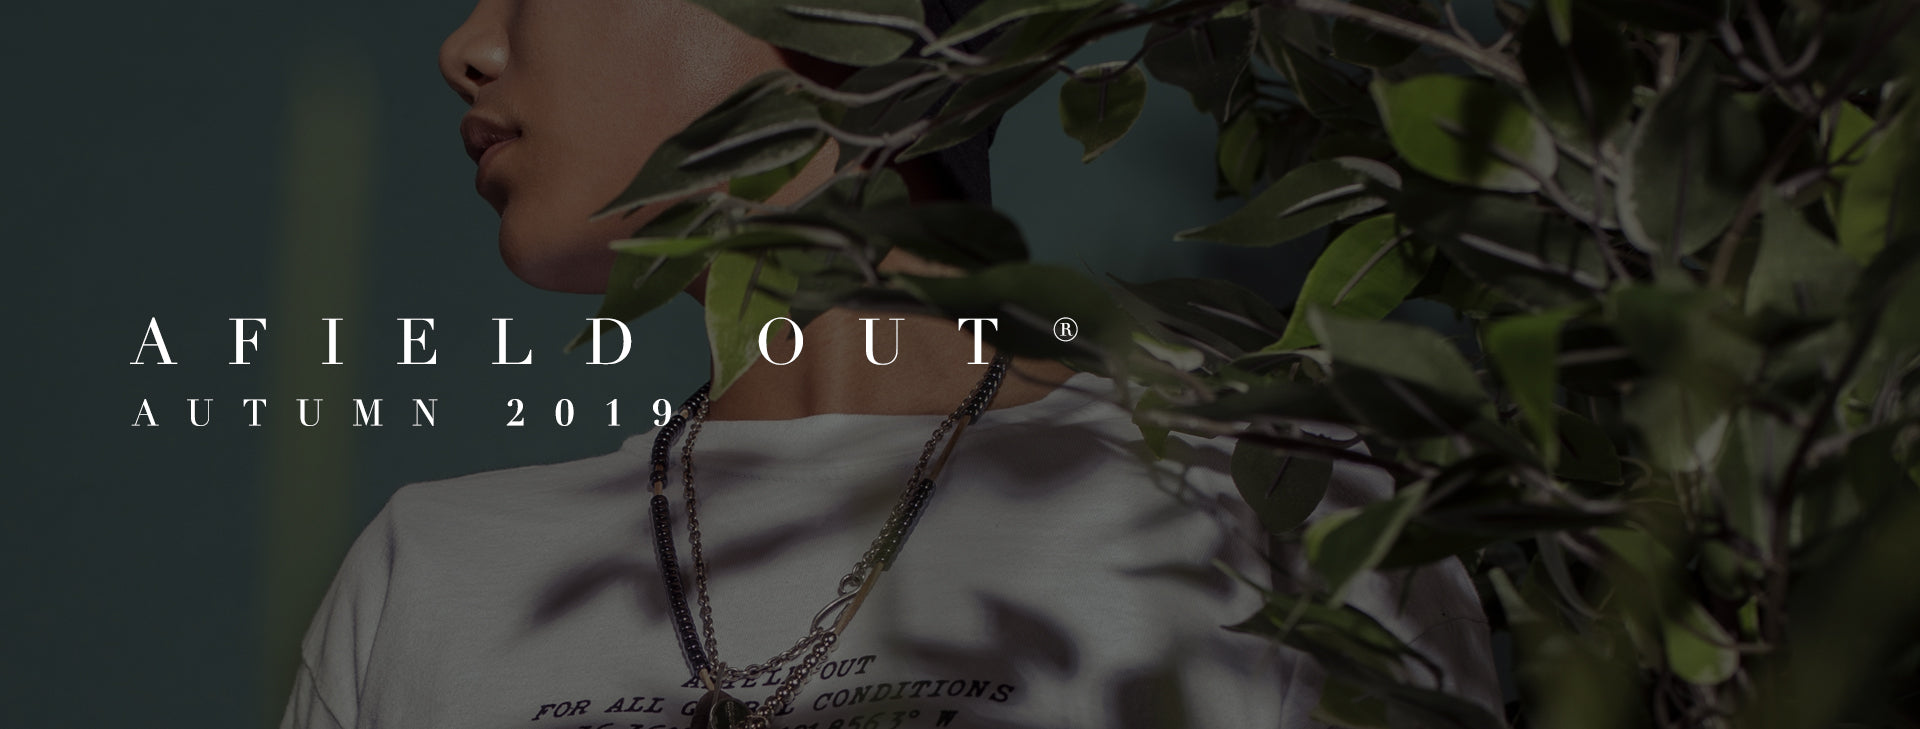 Afield Out® Autumn 2019 Feature